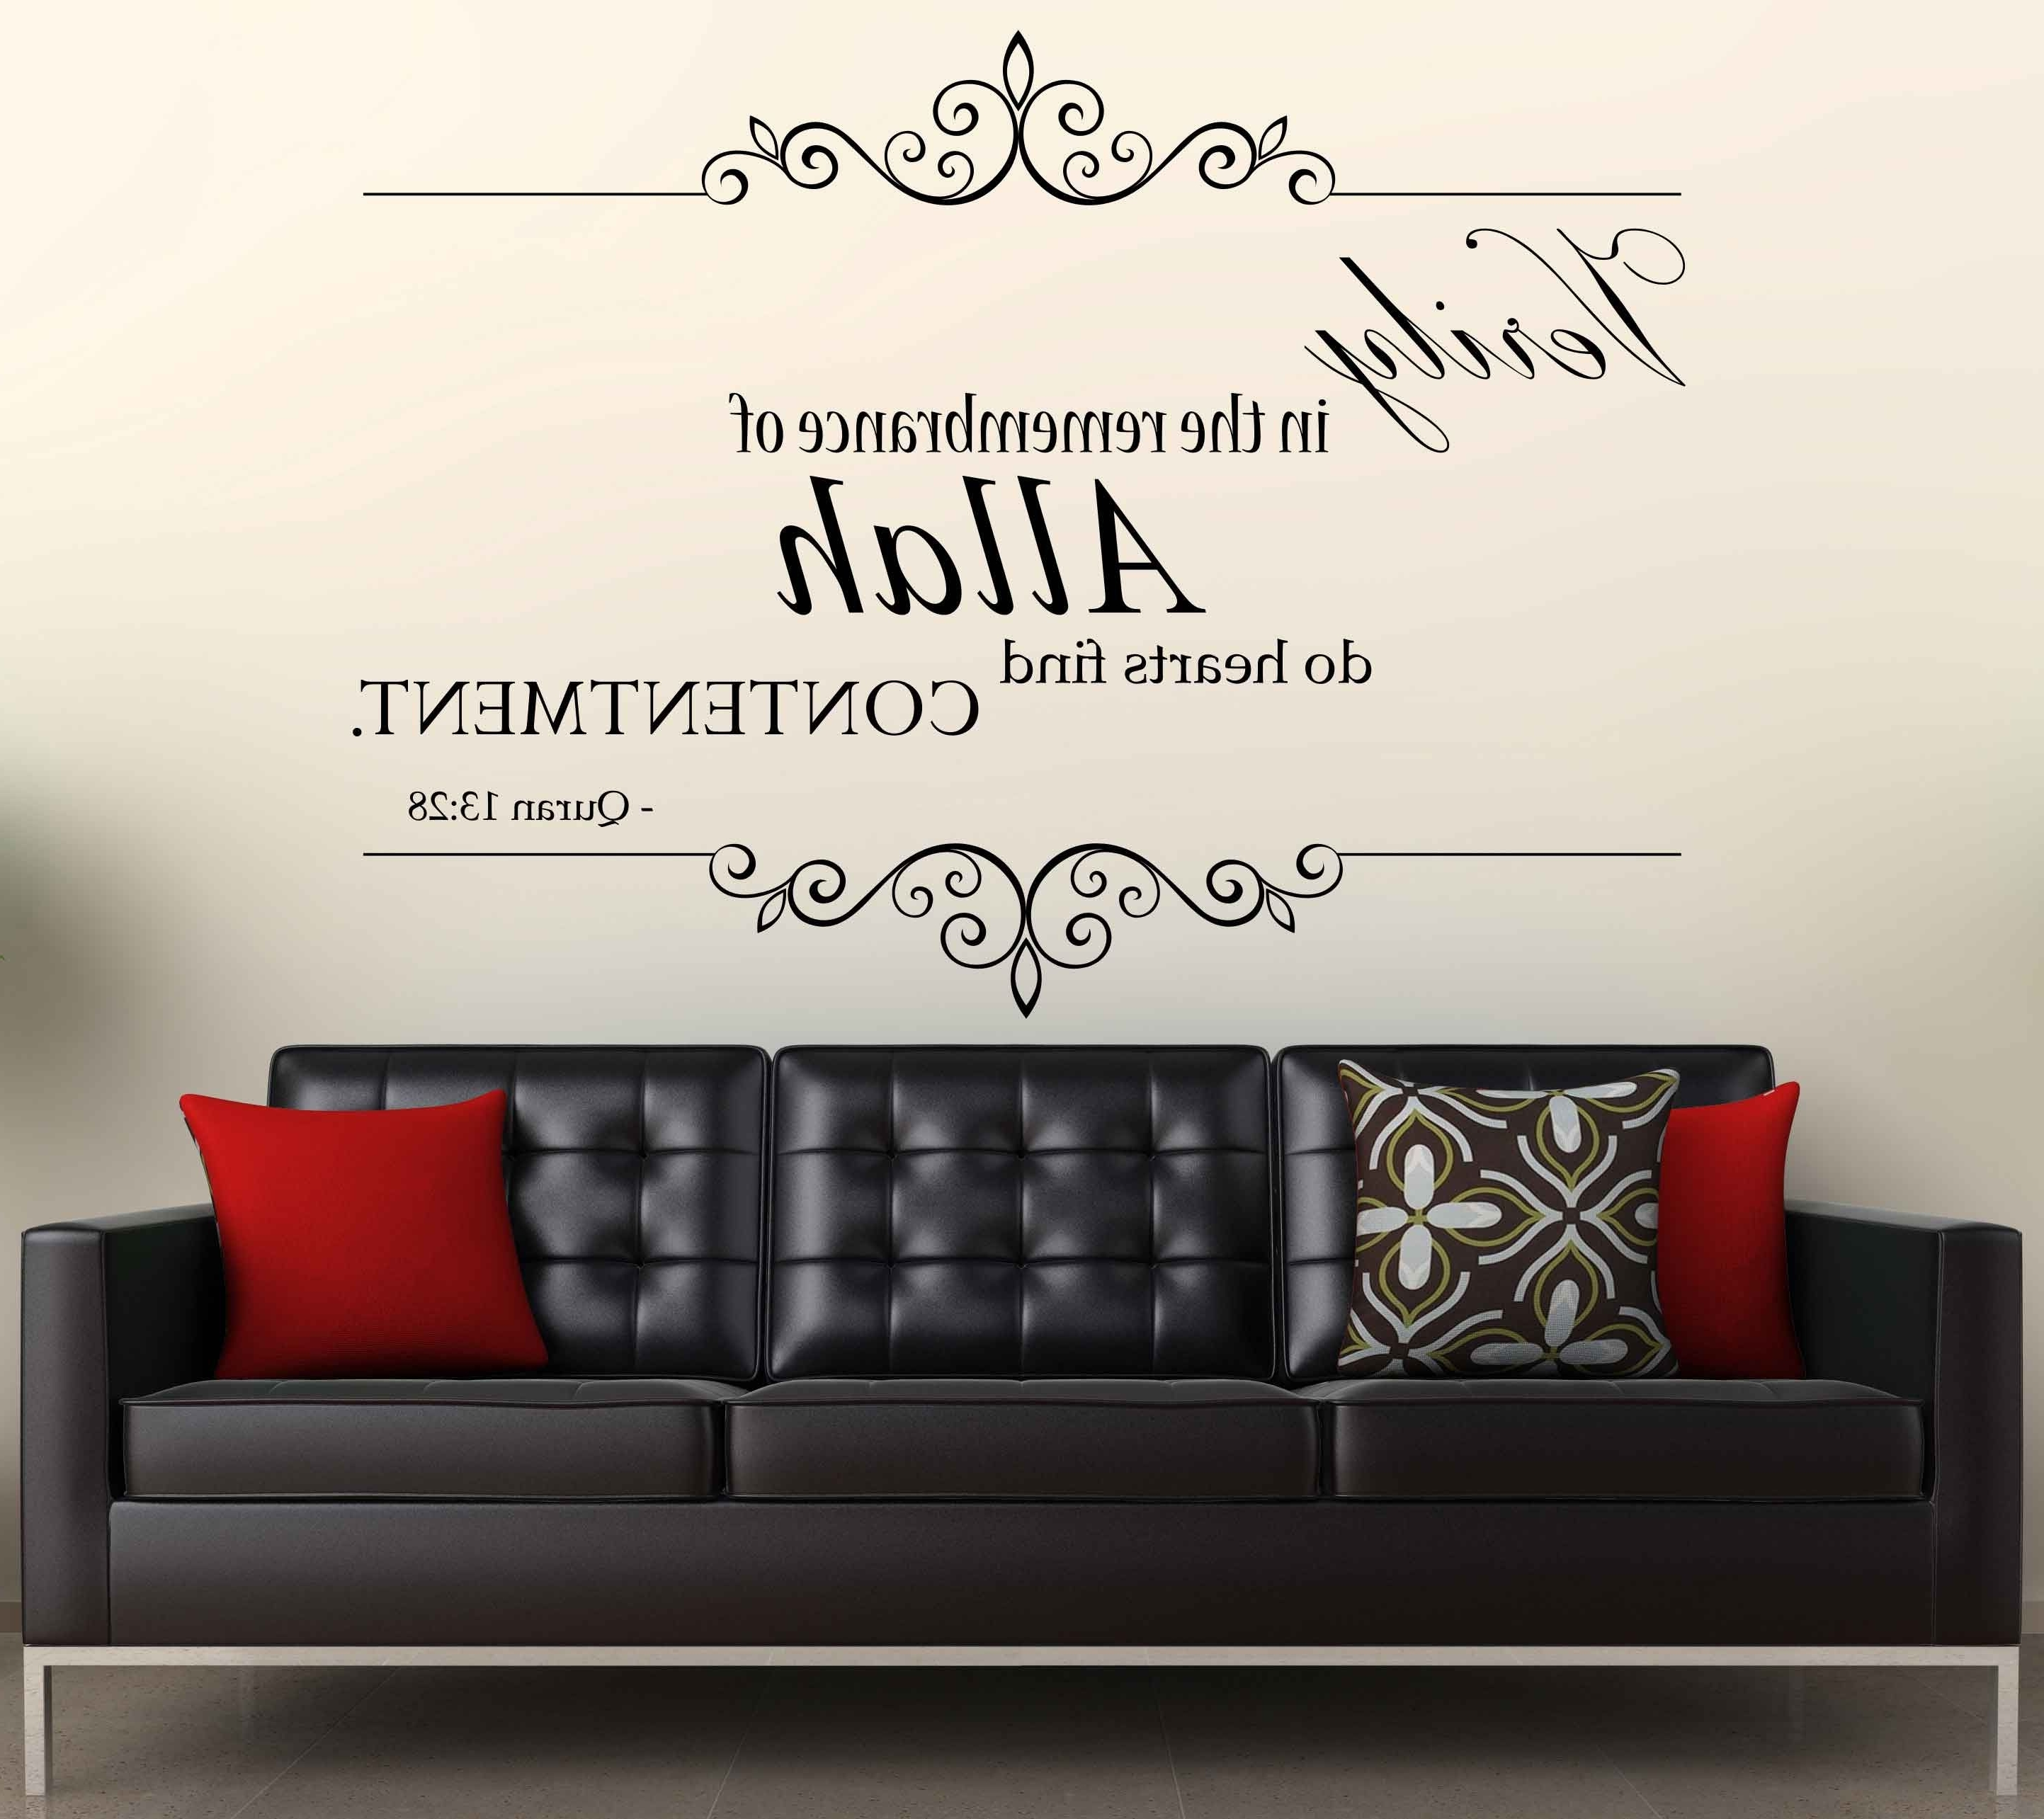 Zama Designs – Verily In The Remembrance Of Allah Islamic Wall Art Throughout Fashionable Islamic Wall Art (Gallery 6 of 20)